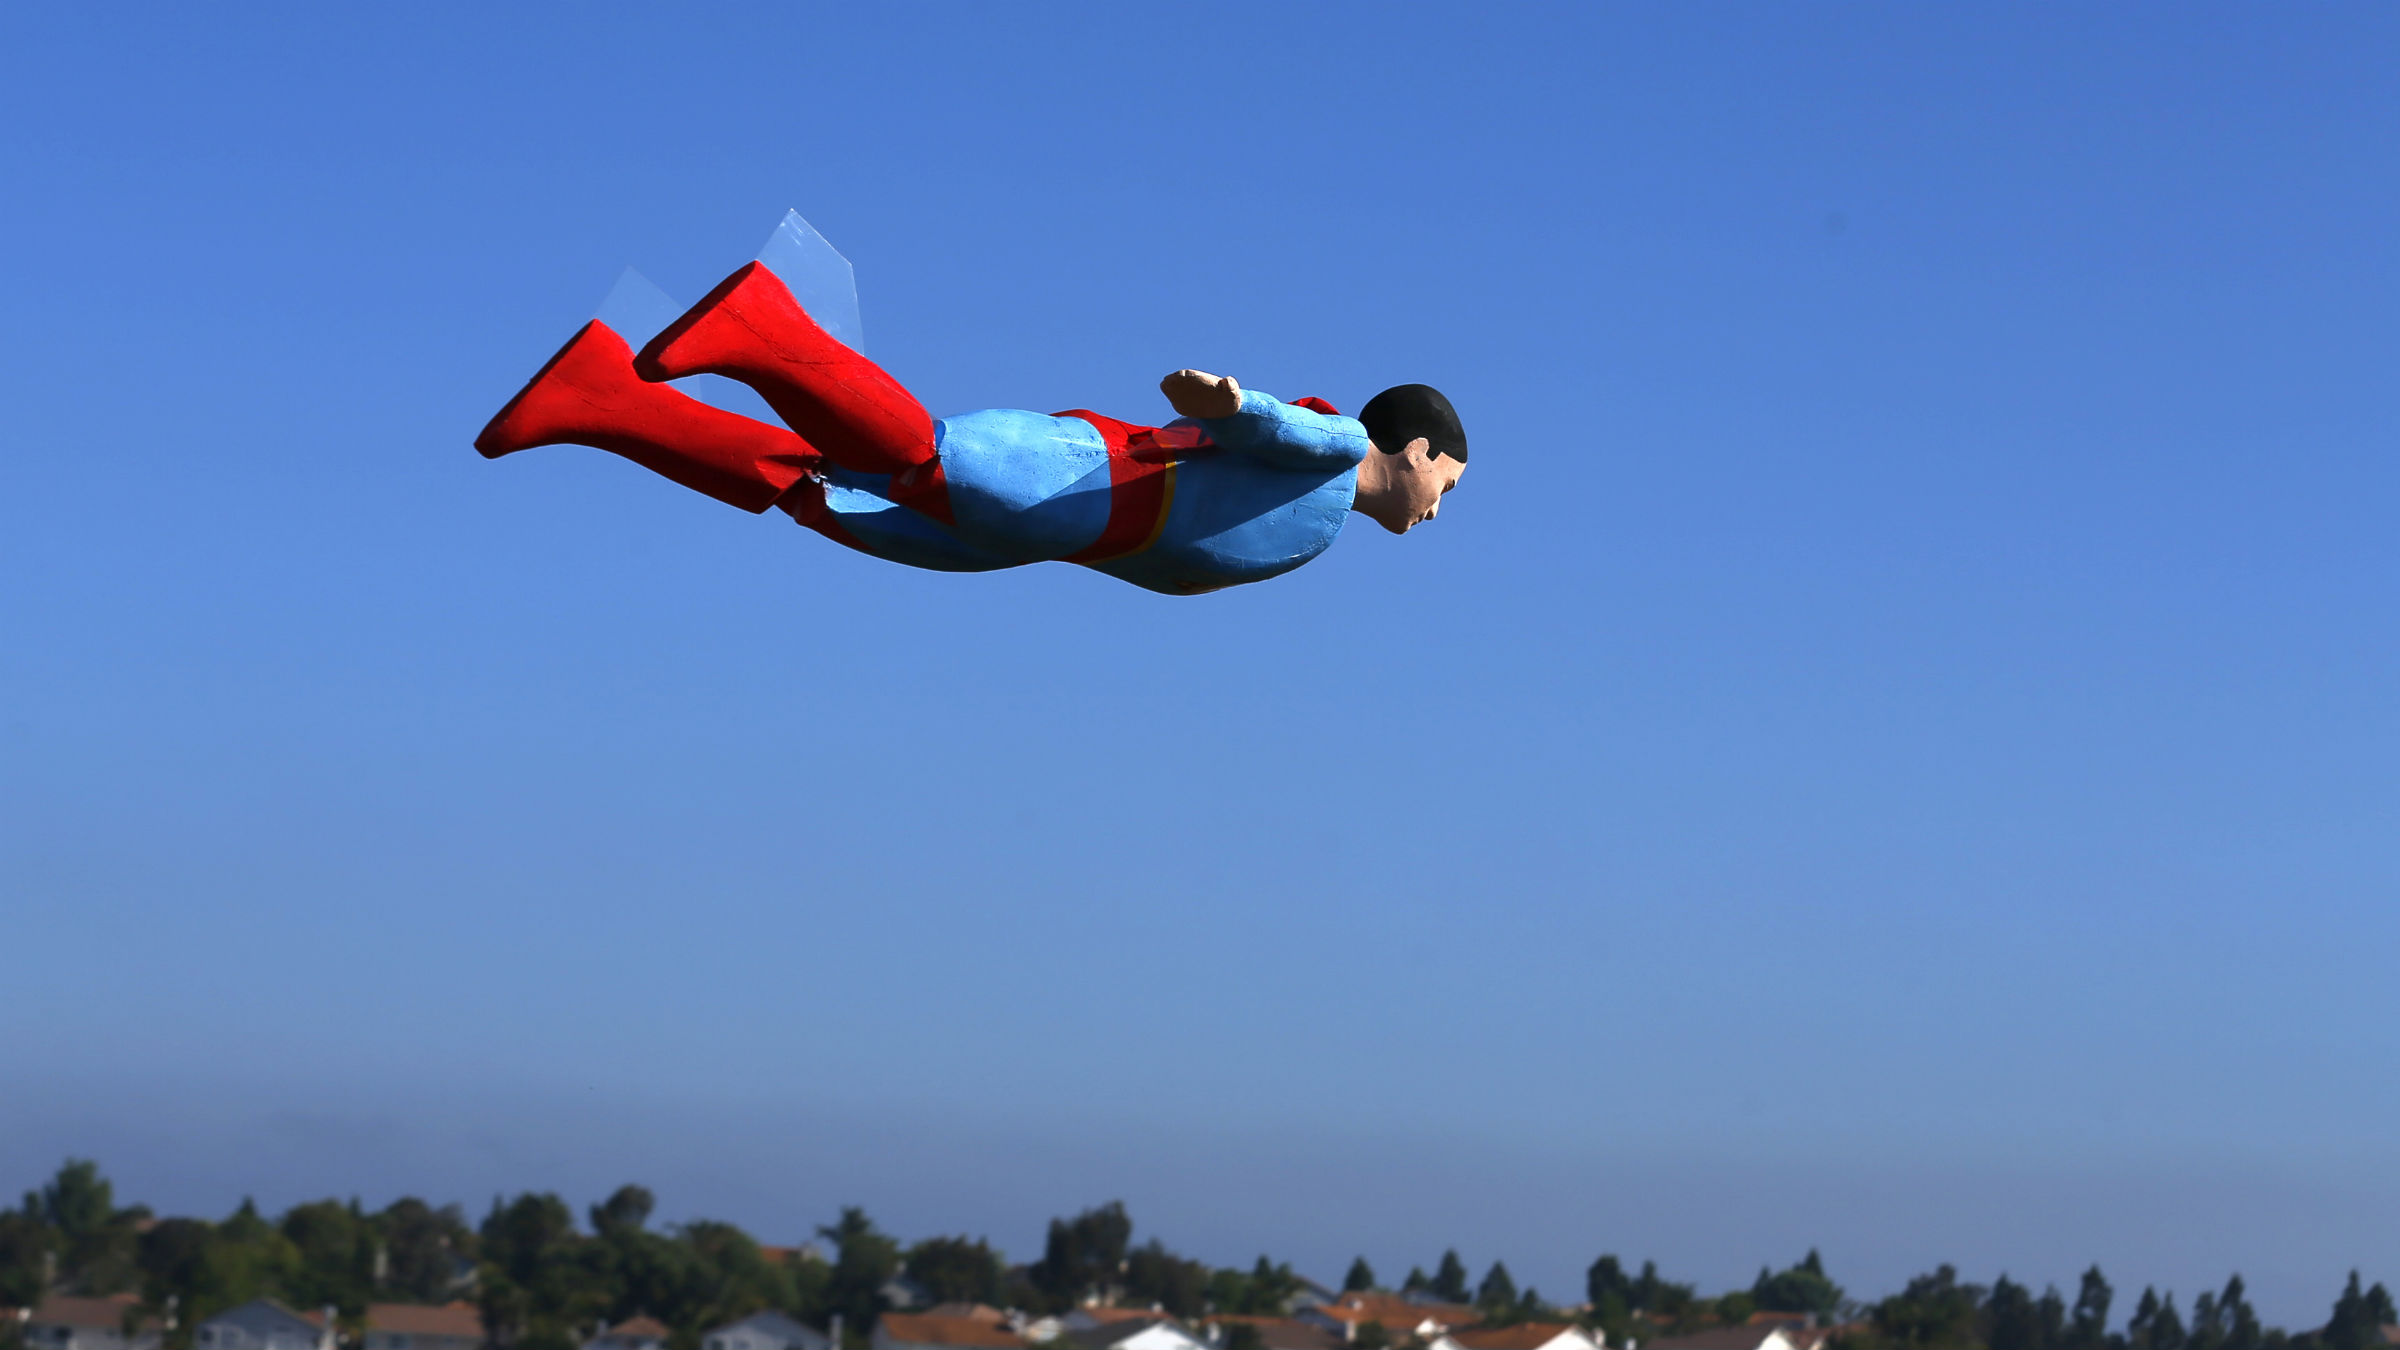 DATE IMPORTED:June 28, 2013A radio-controlled Superman plane is flown by designer Otto Dieffenbach during a test flight in San Diego, California June 27, 2013. Otto and business partner Ed Hanley run a small start-up company that creates flying radio-controlled planes, designed in the form of people, characters and objects, for commercial and promotional uses.